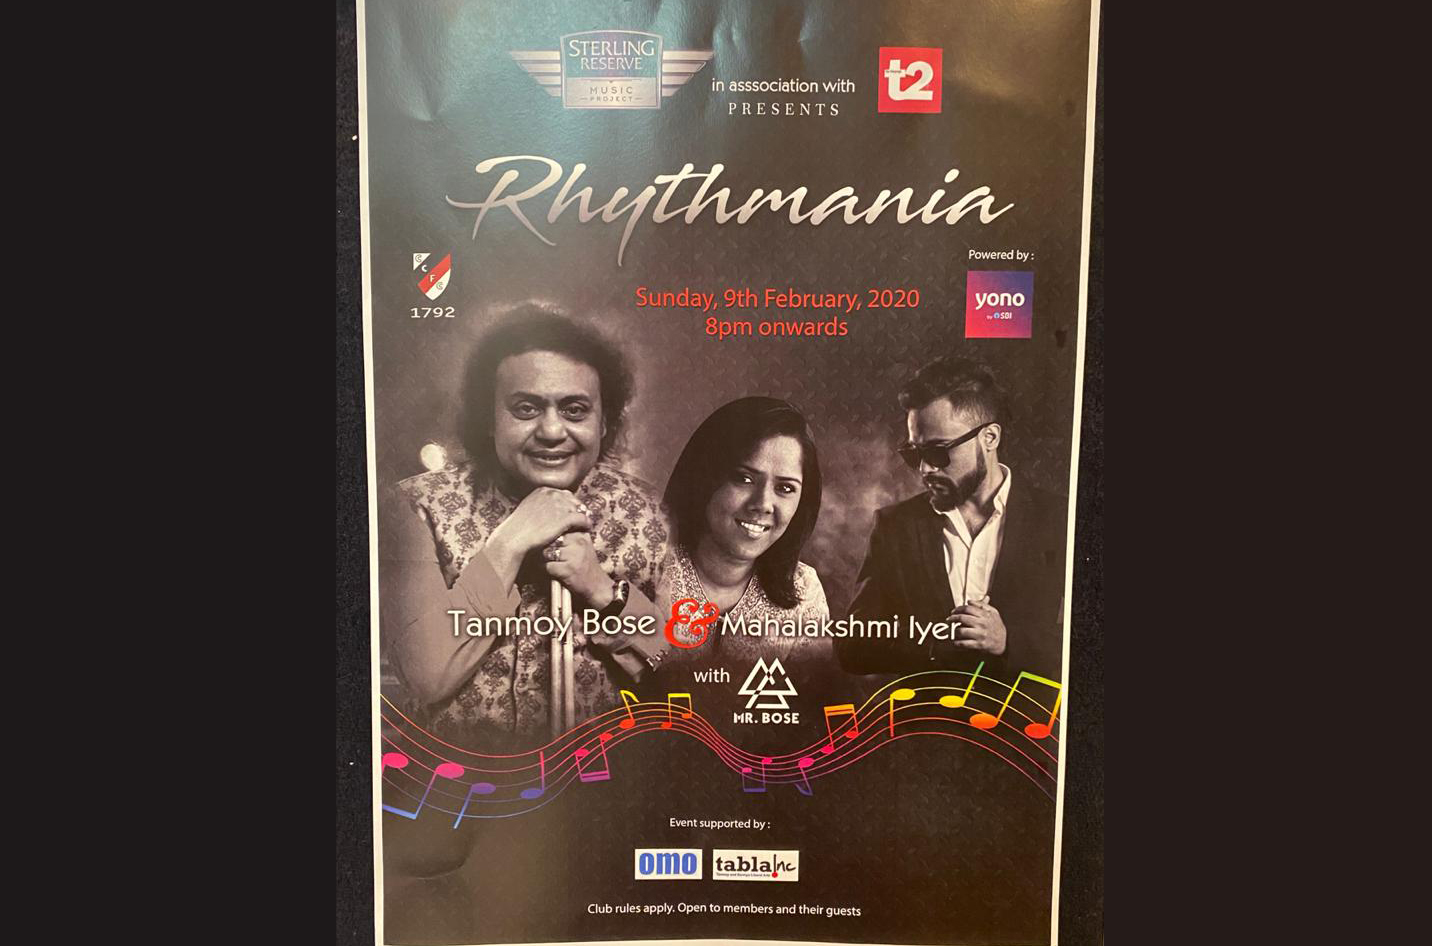 Celebrating Rhythmania at CC & FC